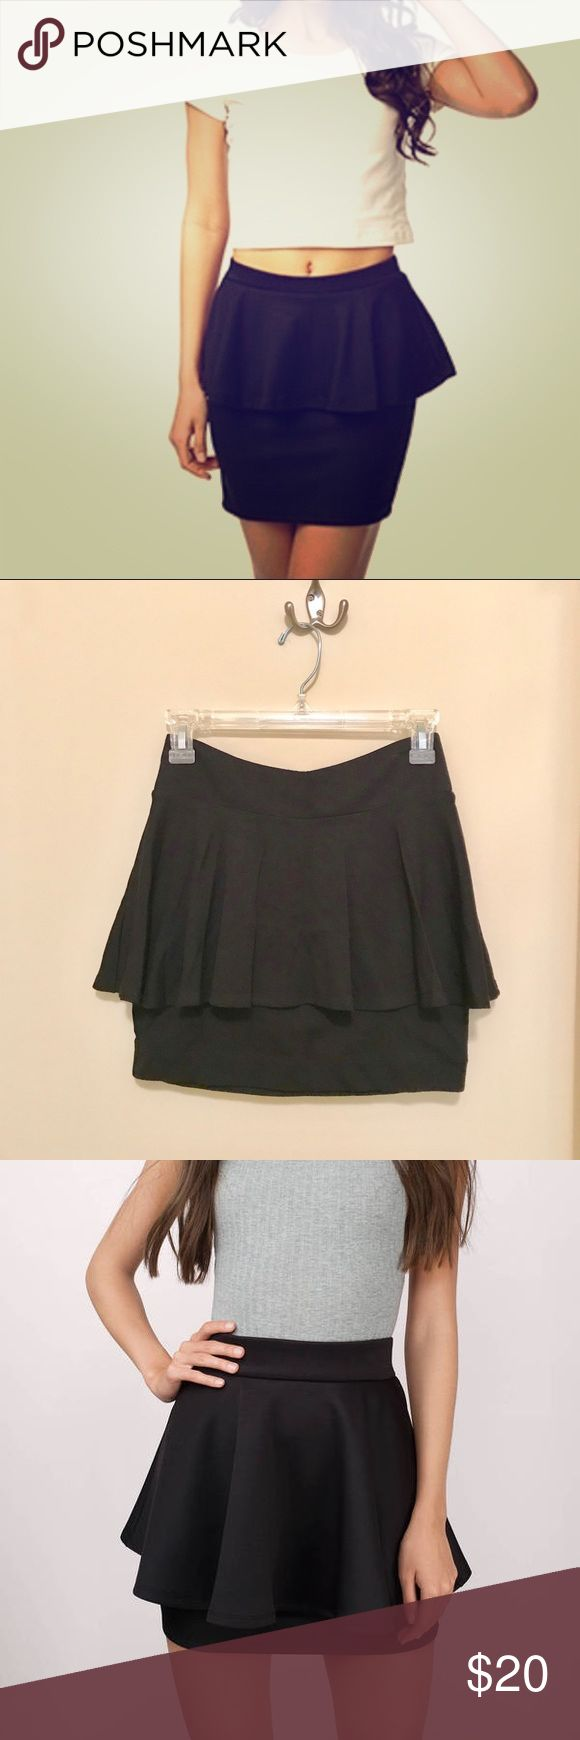 Black Peplum Skirt Black Peplum style skirt by Forever 21. Size small. Worn and washed once. Excellent condition. I have found some google photos for skirt but they not be exact see photos of actual item too! I would model mine but it no longer fits. Measurements in photos. Material: 62% rayon 35% polyester 3% spandex. Hand wash according to tag but it can machine wash on a gentle cycle. Forever 21 Skirts Mini